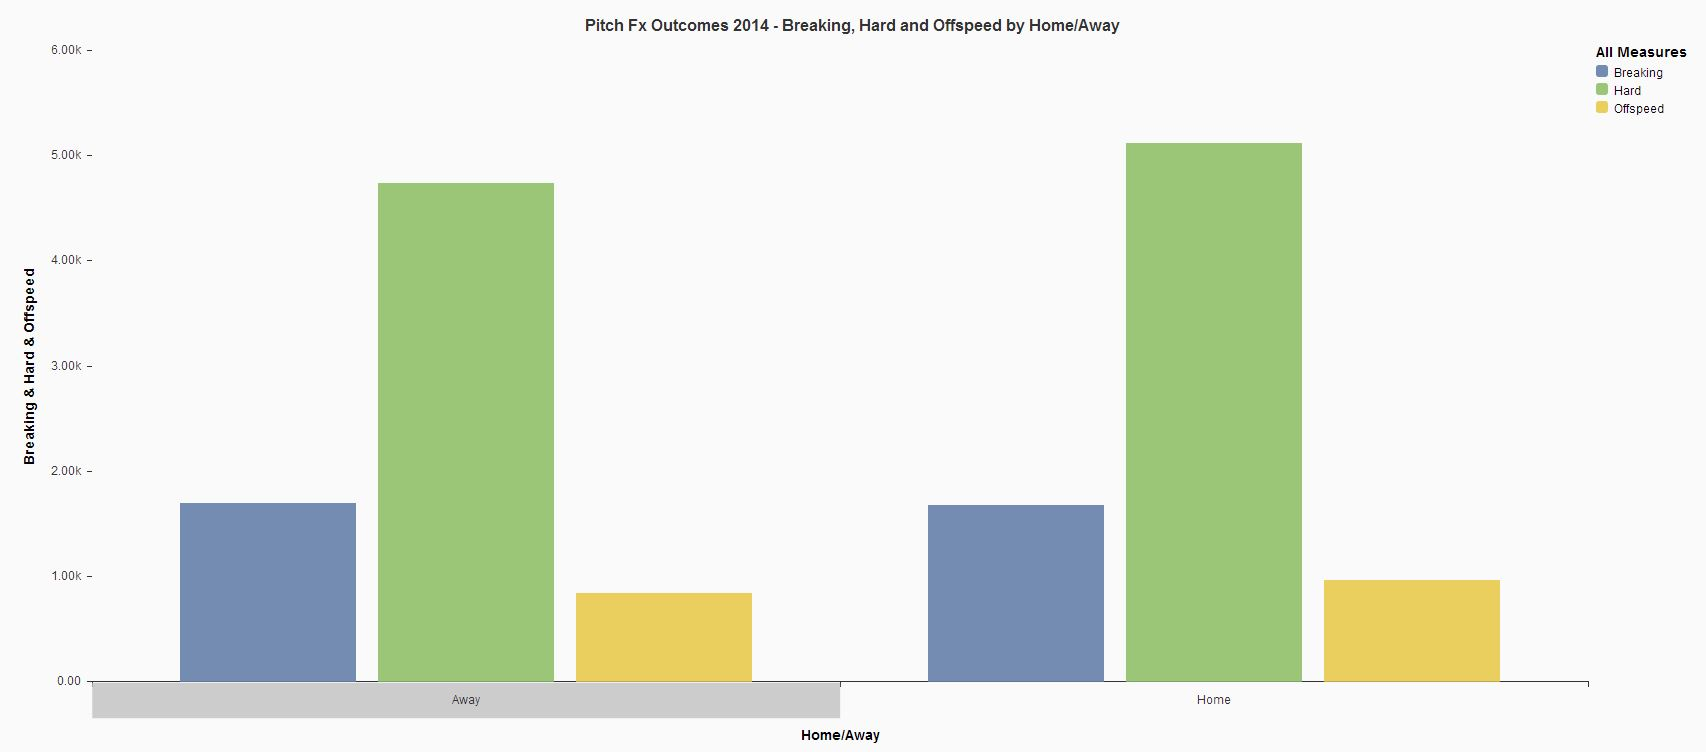 Pitch FX Outcomes 2014 Breaking Hard Offspeed by Home Away.JPG